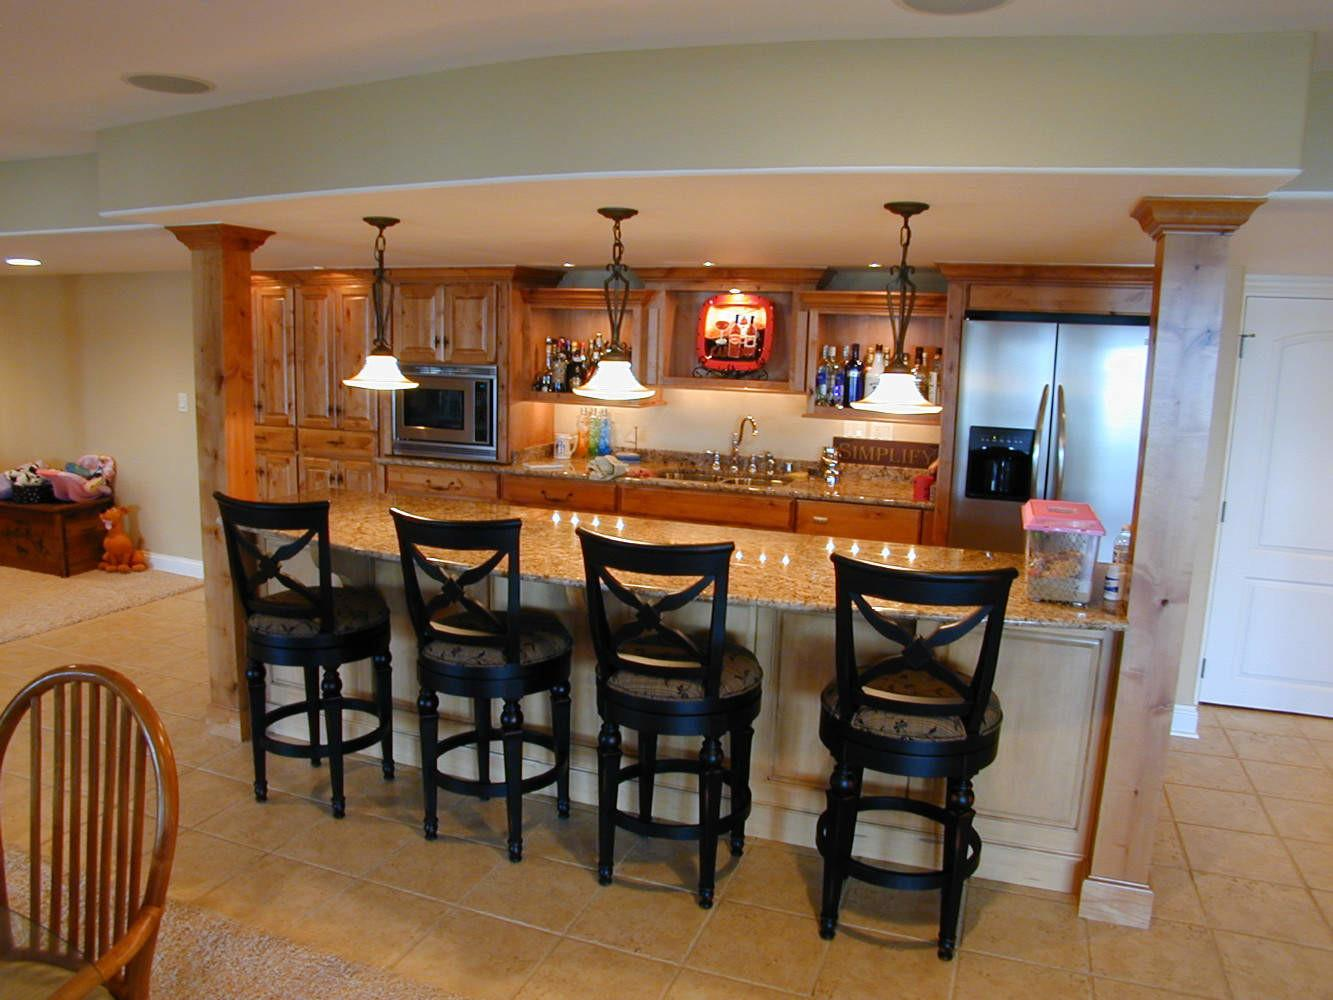 Beautifully Kitchen Bar Designs That Every Woman Will Adore Incredible Pictures Decoratorist